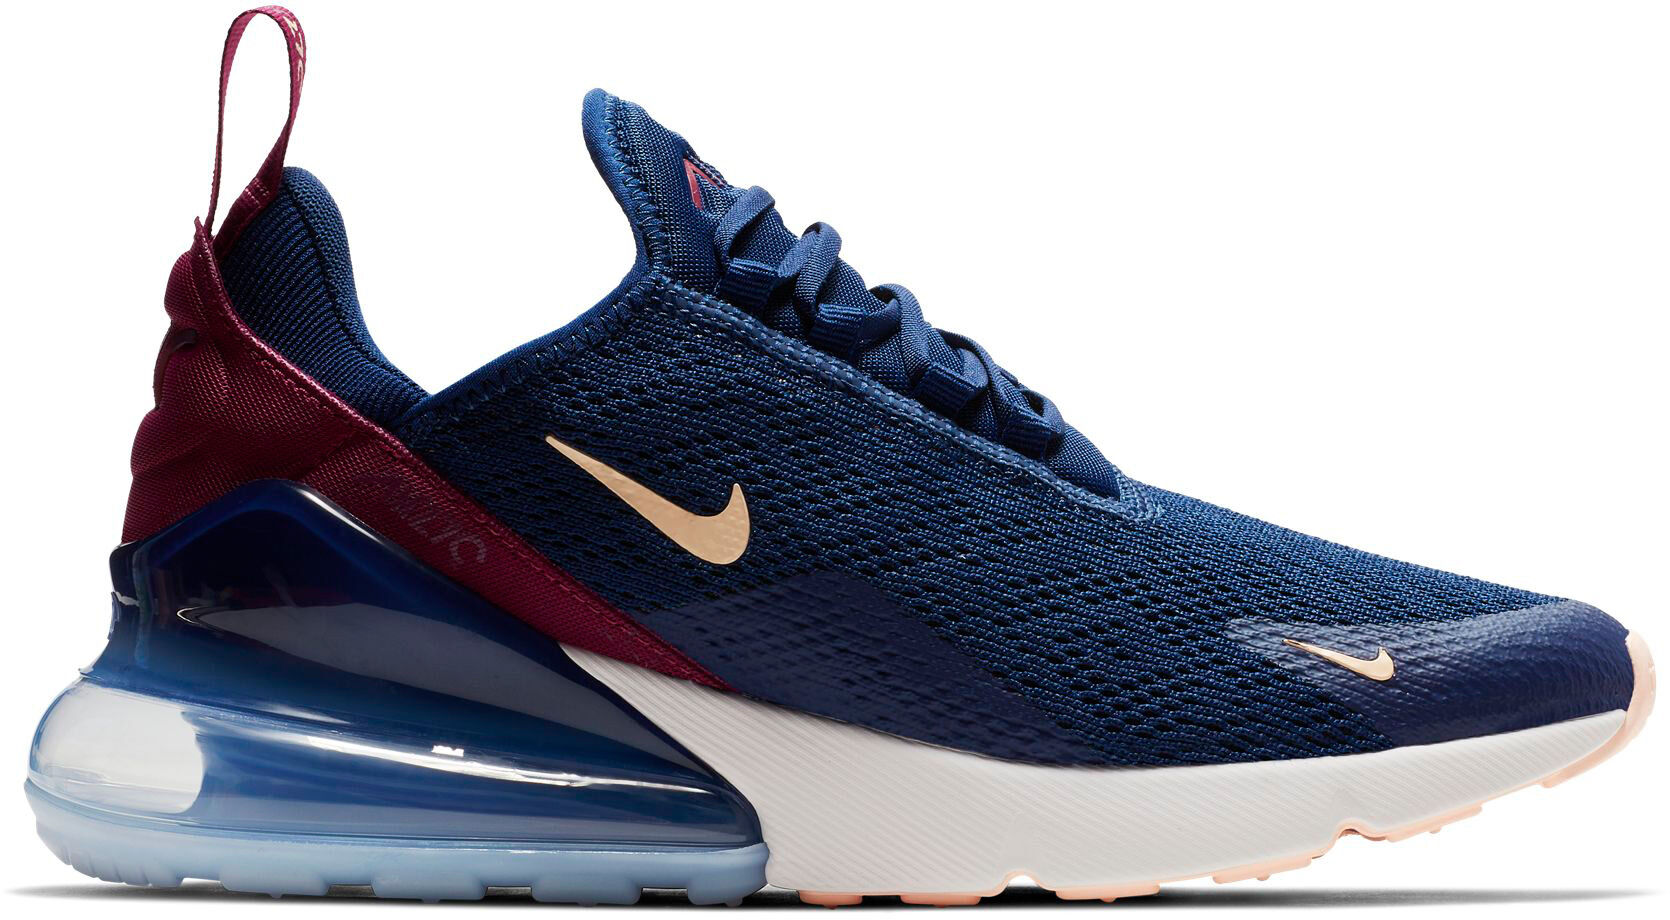 Nike Air Max 270 for Dames | The Athletes Foot